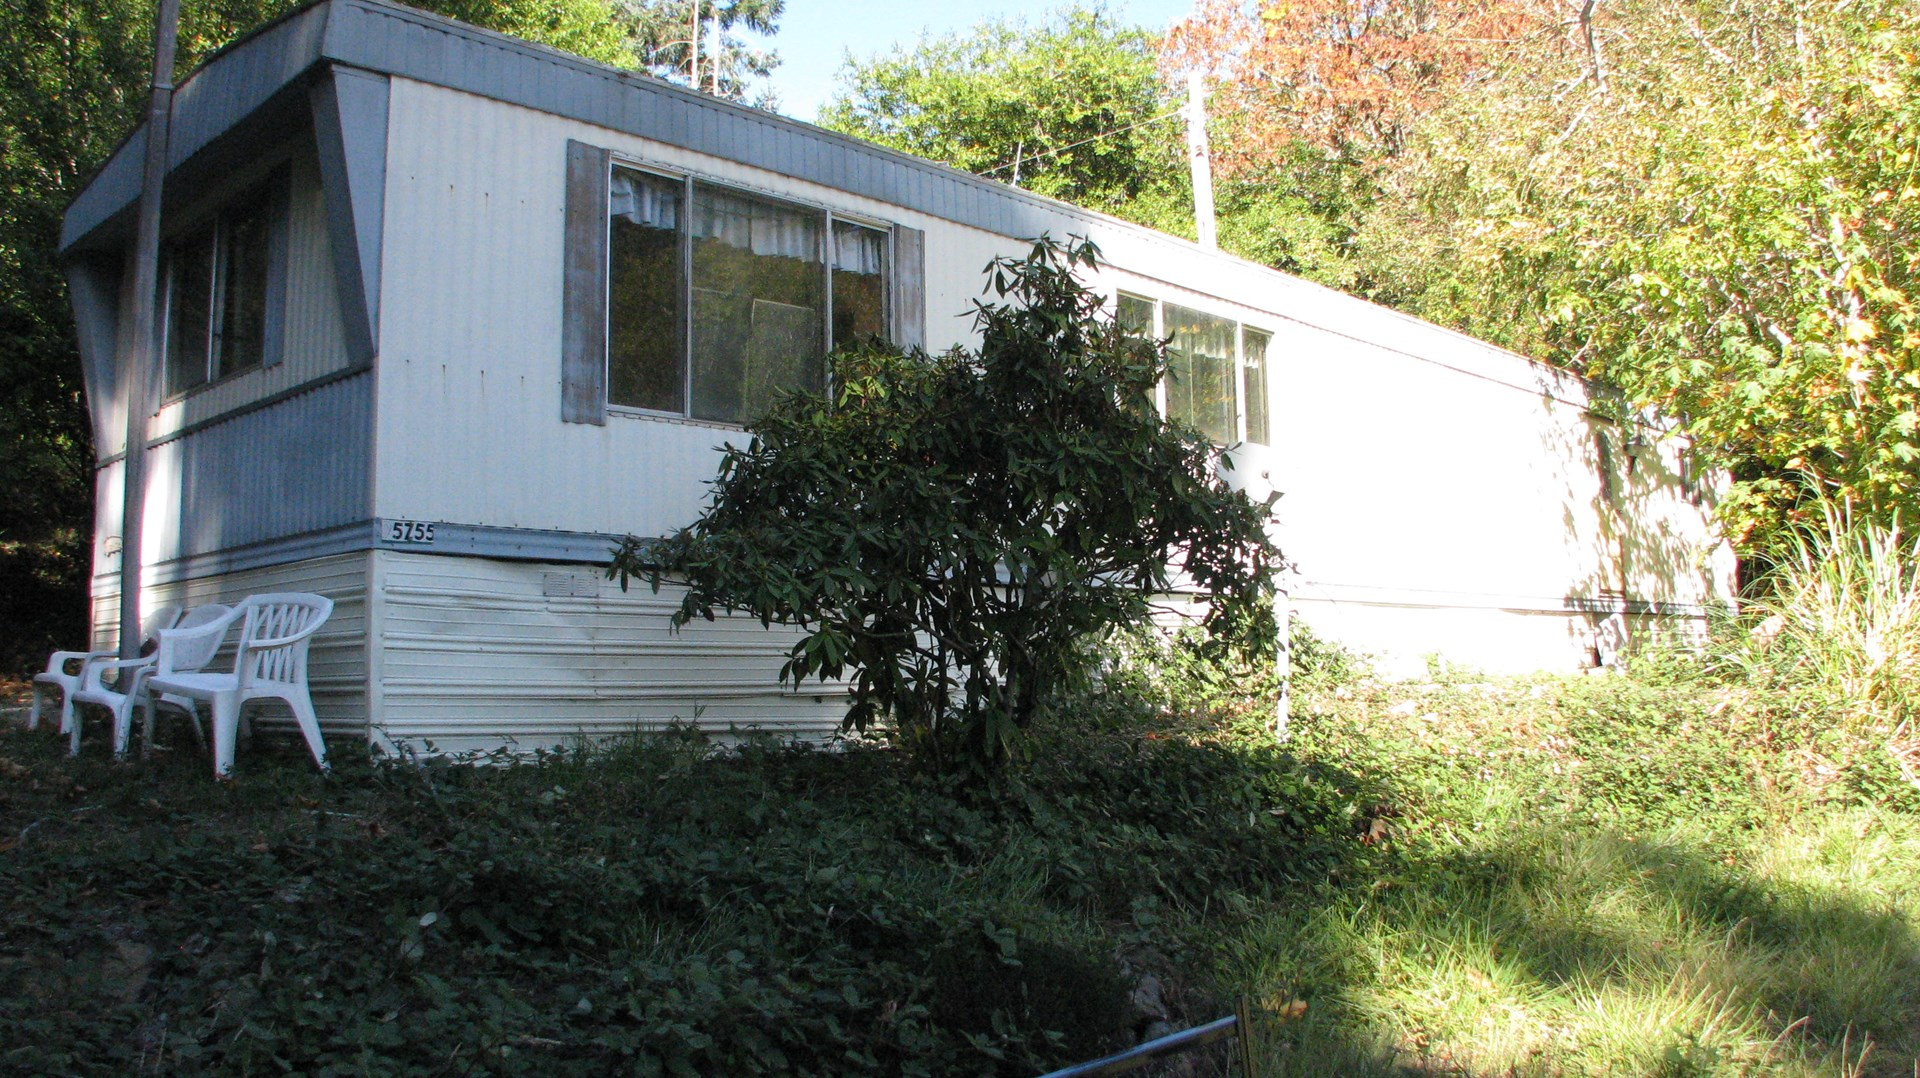 House for Sale in Gold Beach, OR